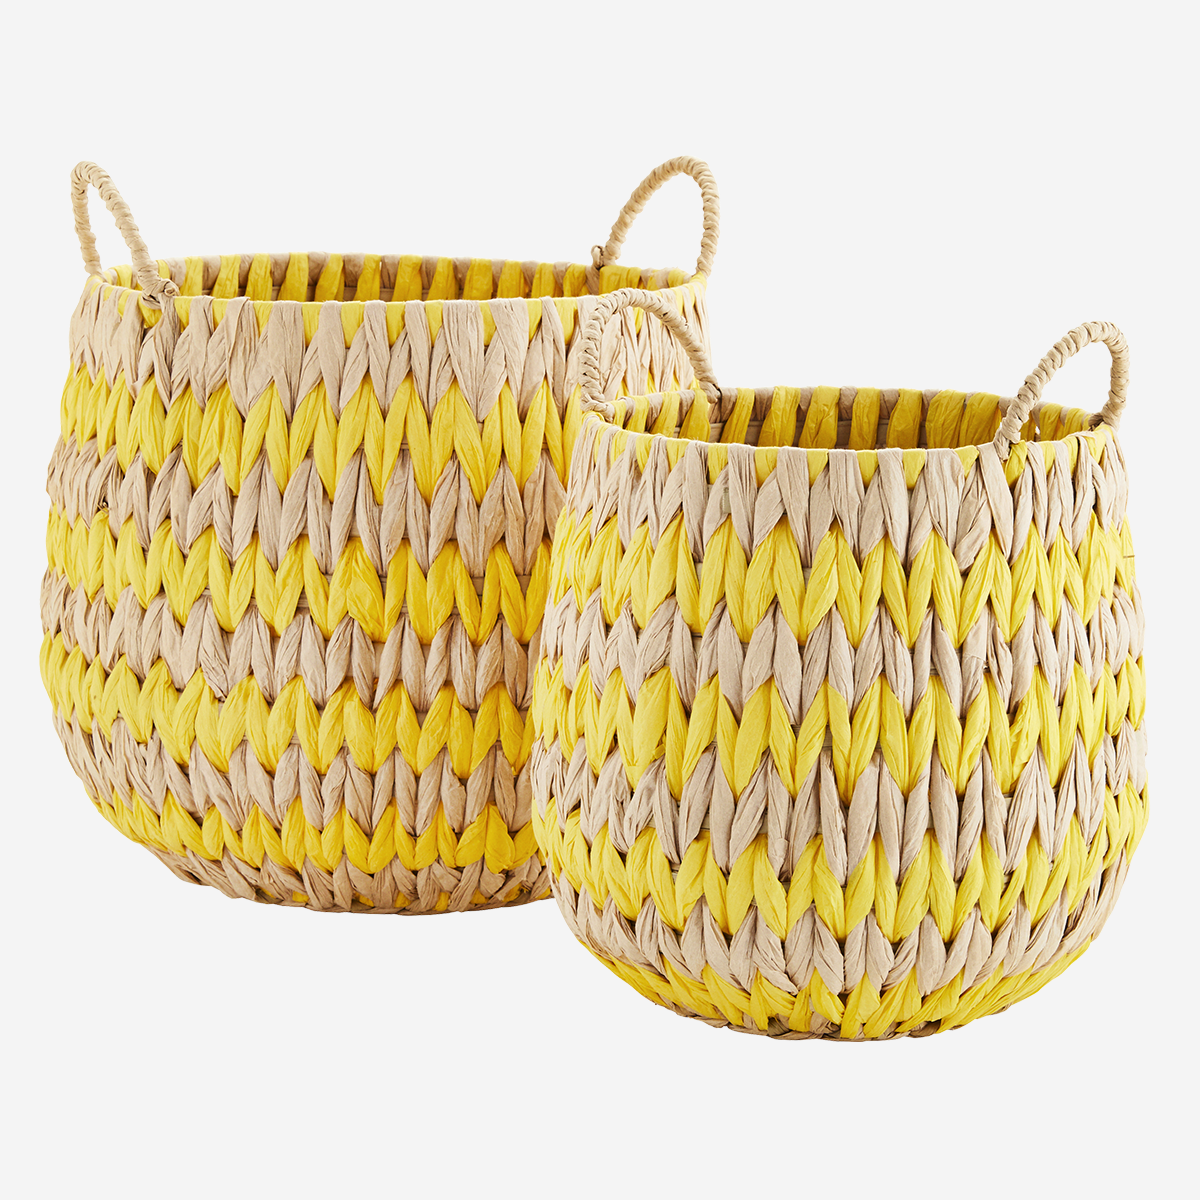 Wicker baskets w/ handles